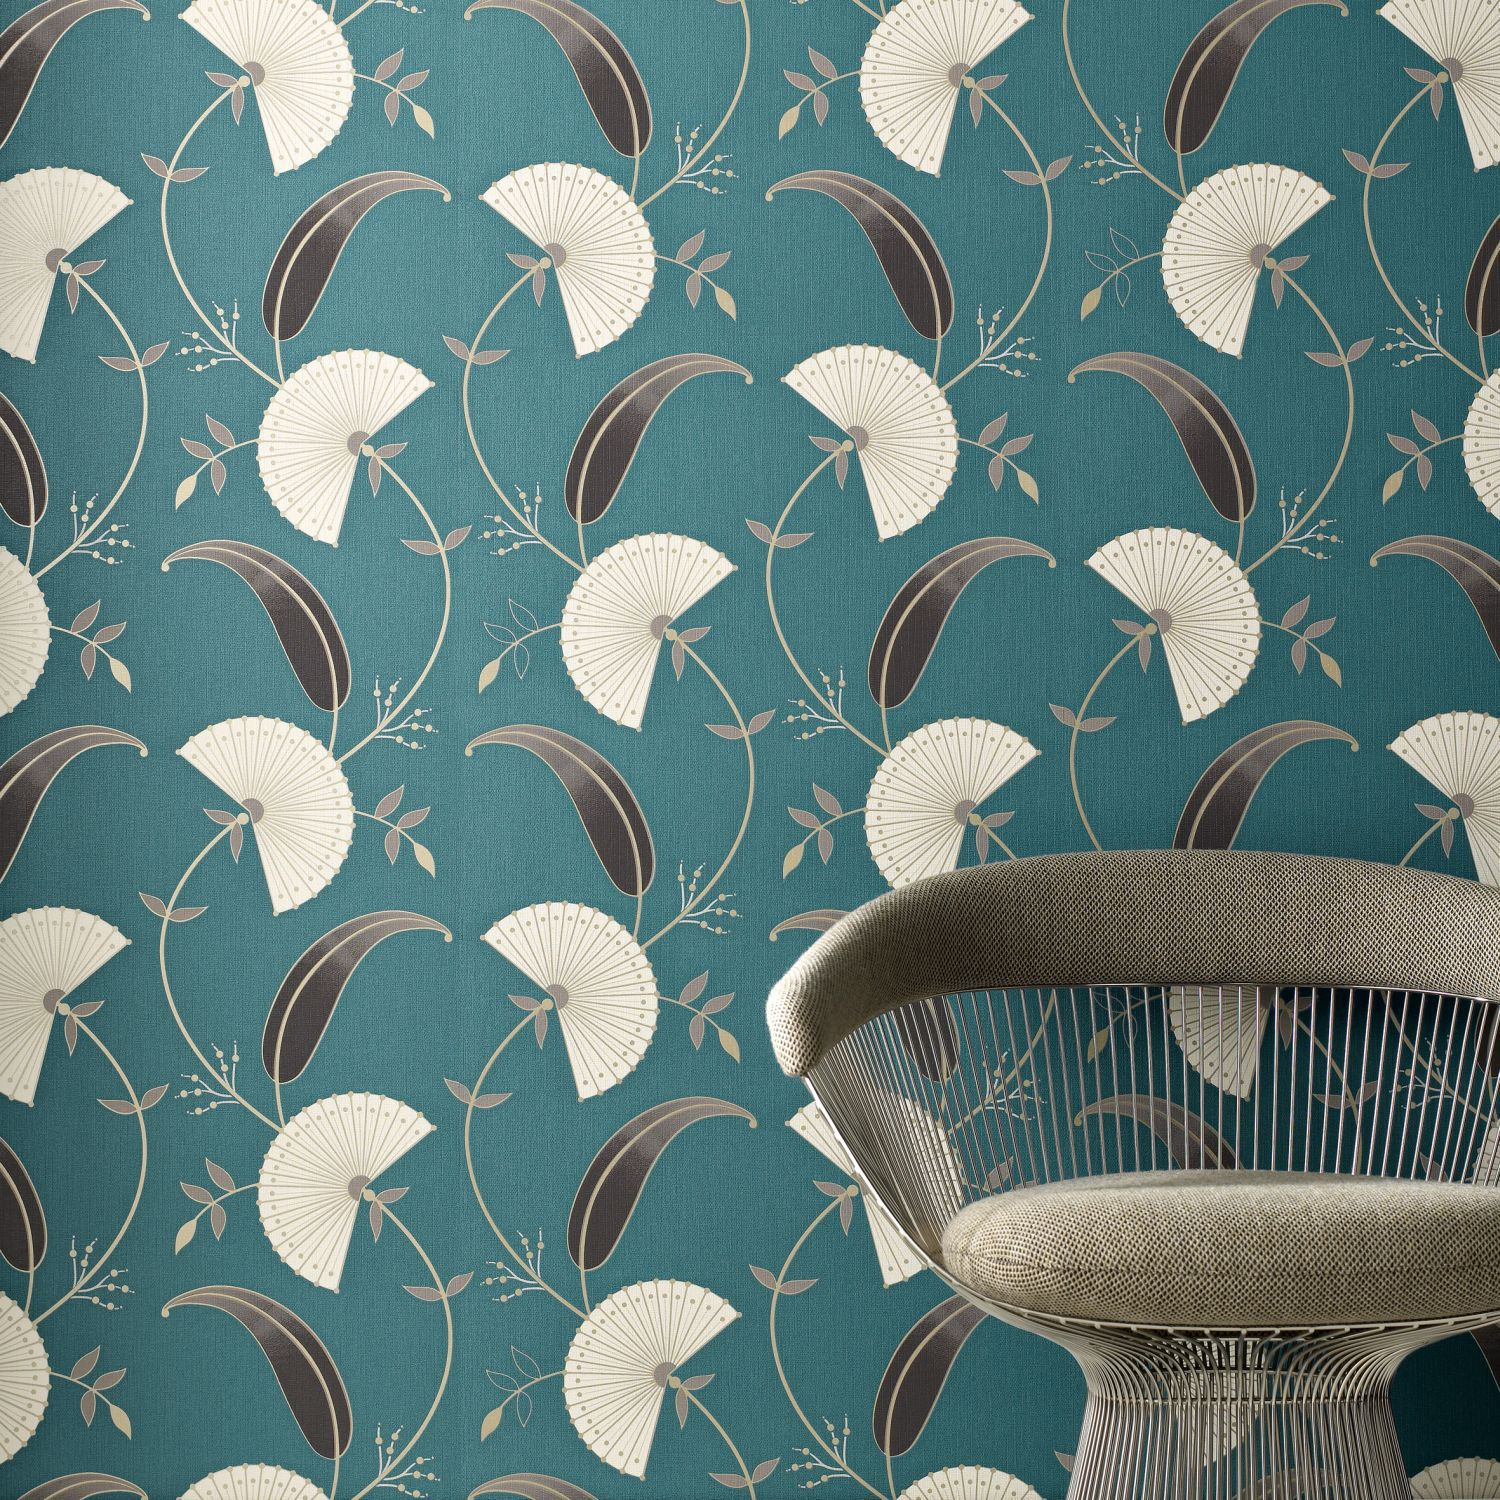 Graham & Brown Teal/chocolate precious wallpaper - House of Fraser